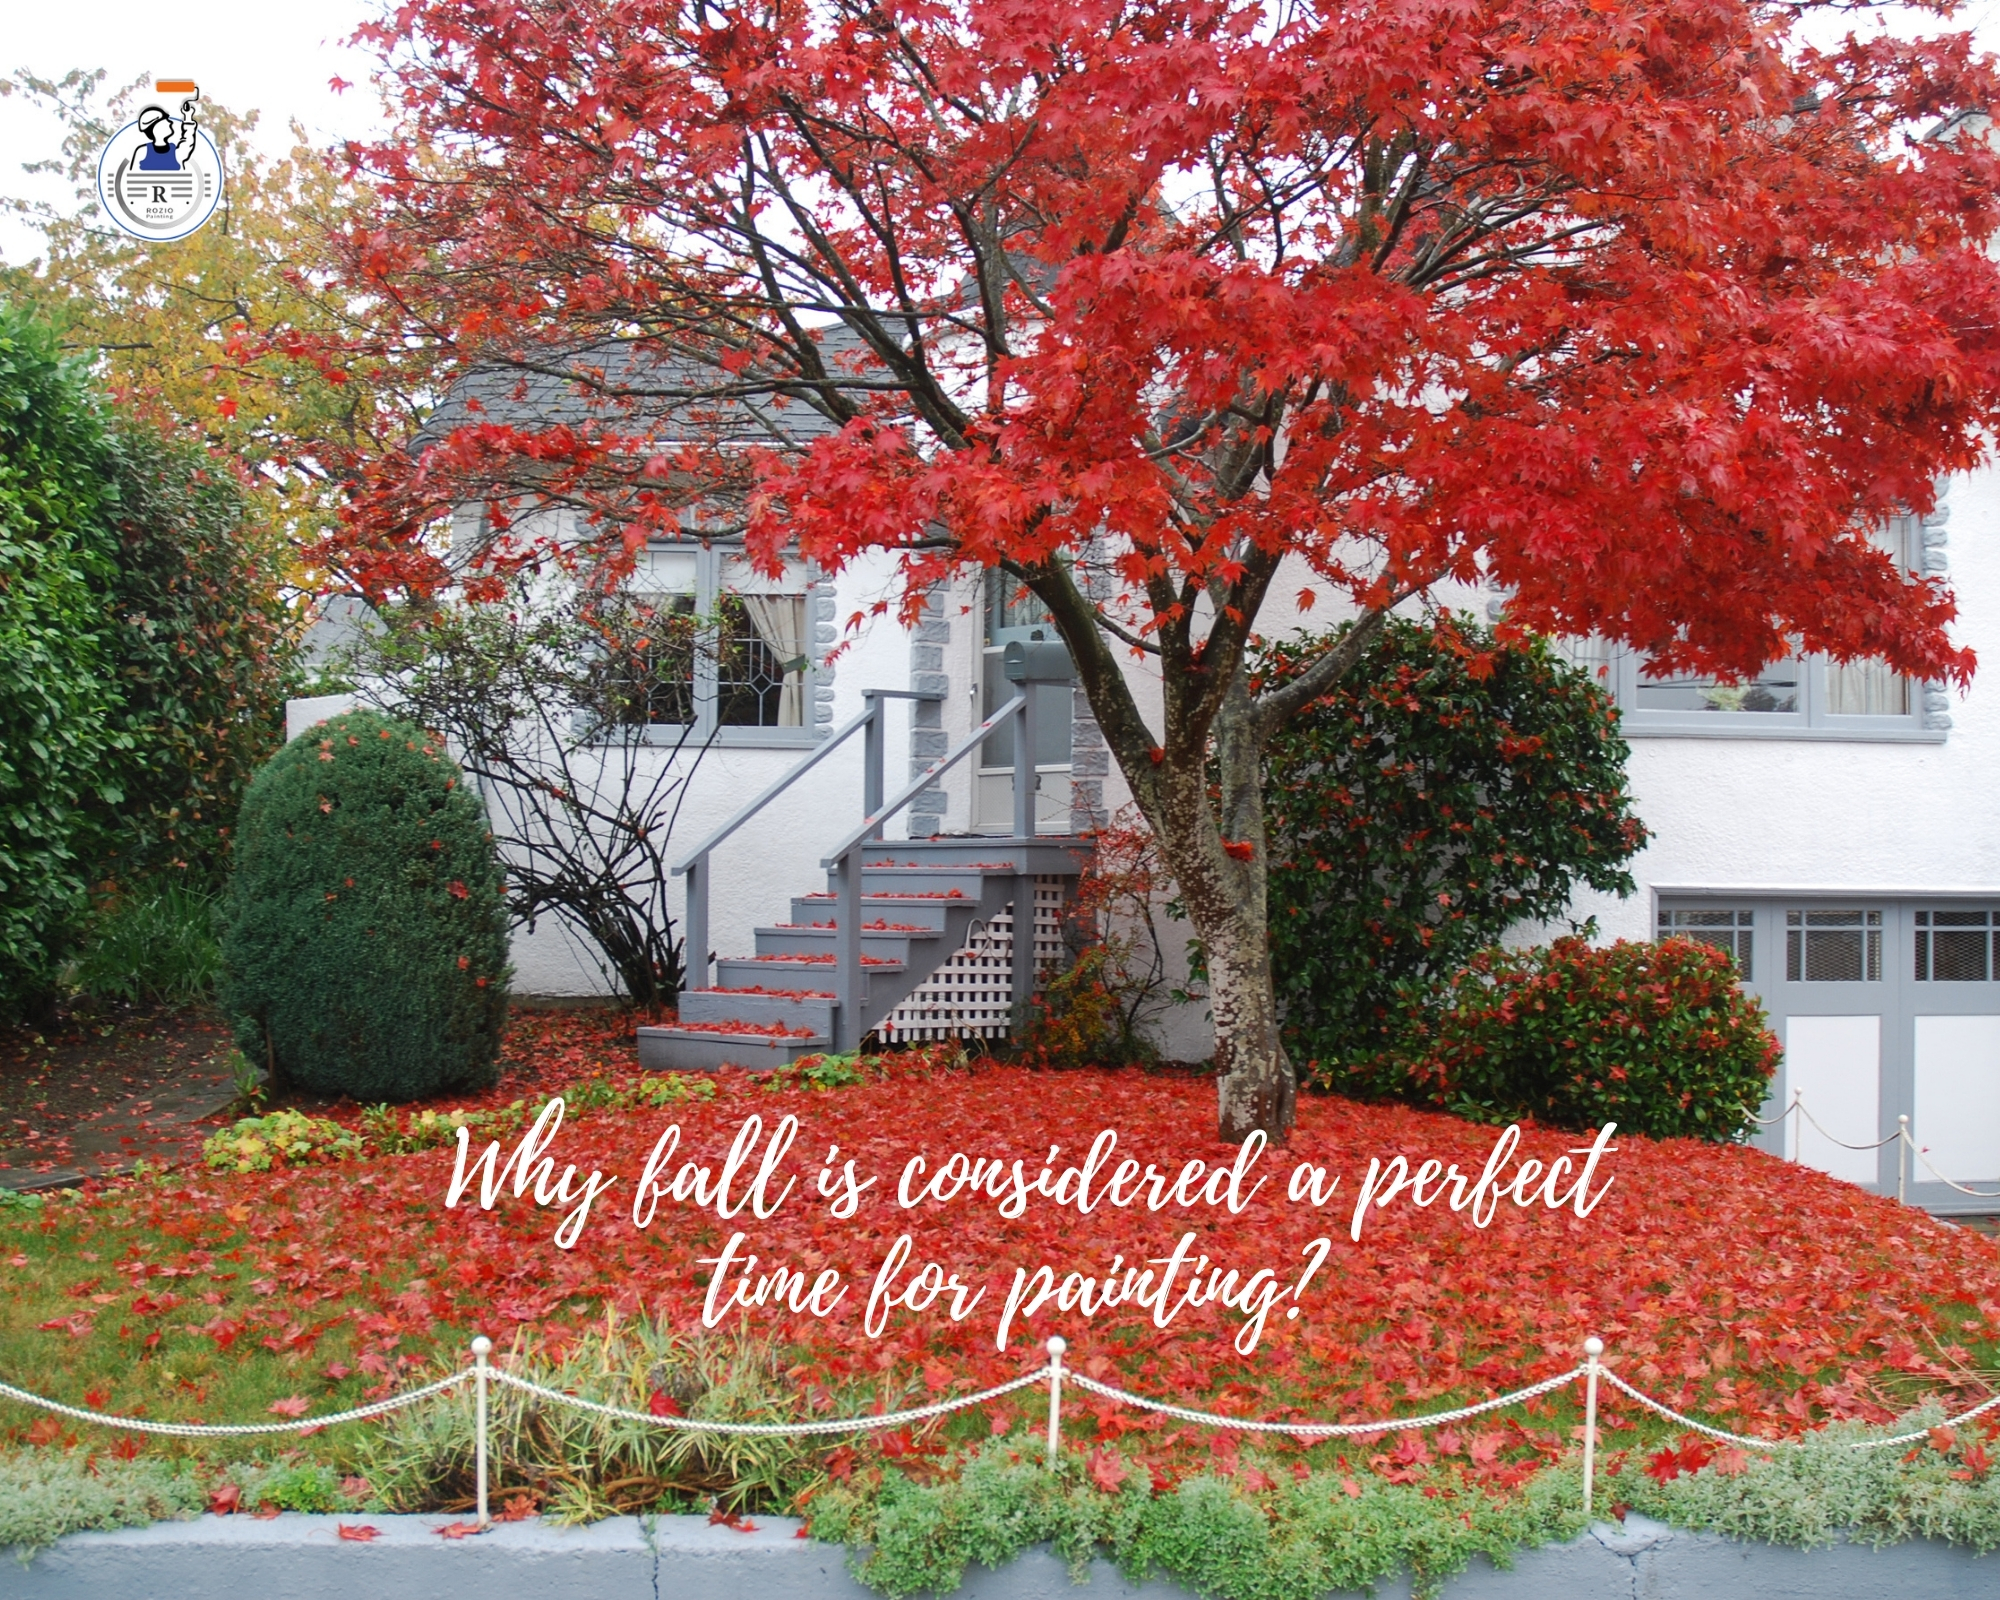 Why fall is considered a perfect time for painting